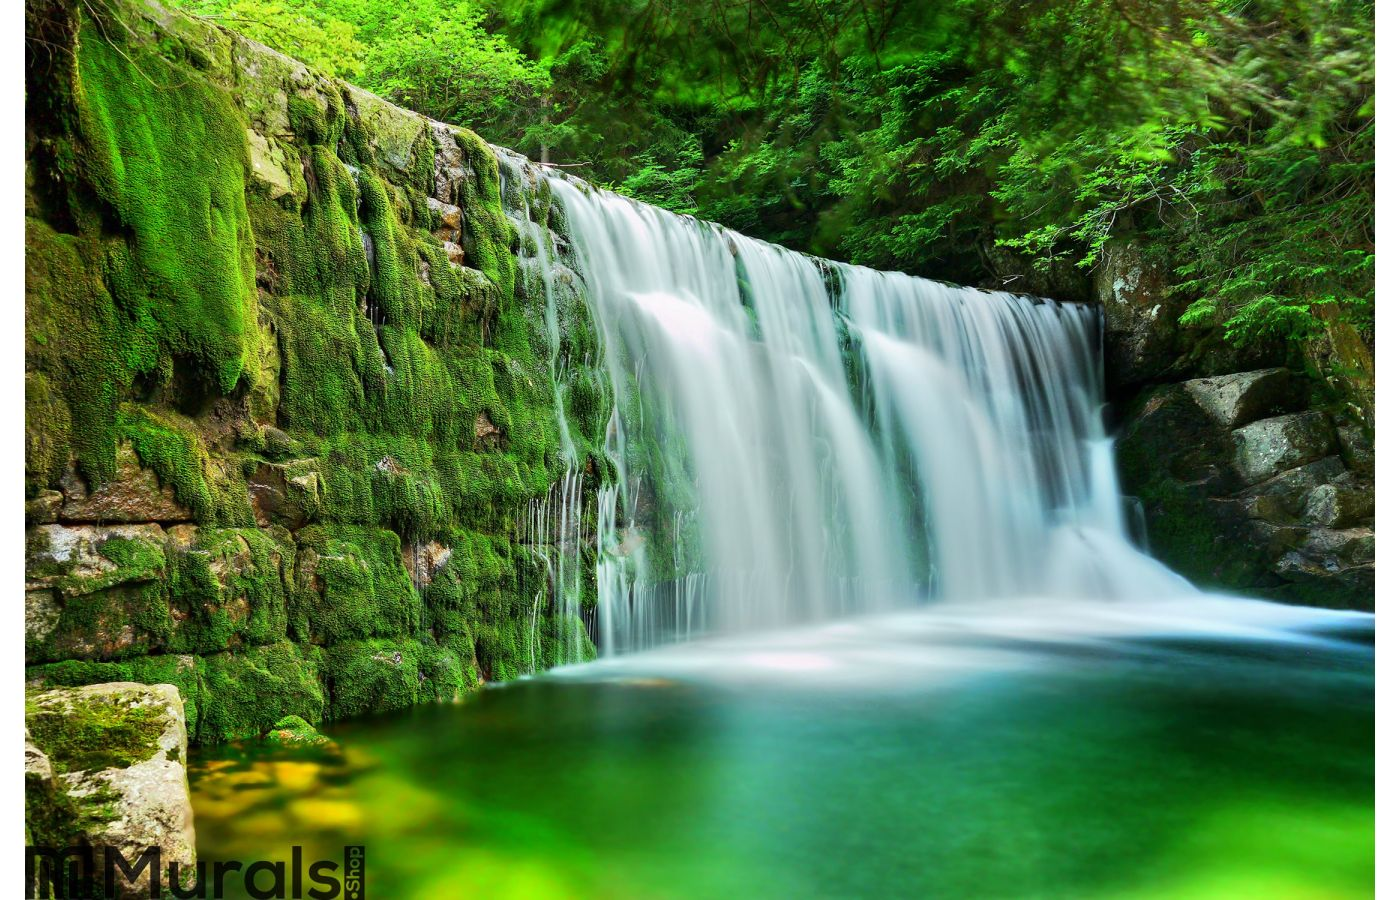 Lake emerald waterfalls forest landscape wall mural for Emerald city wall mural